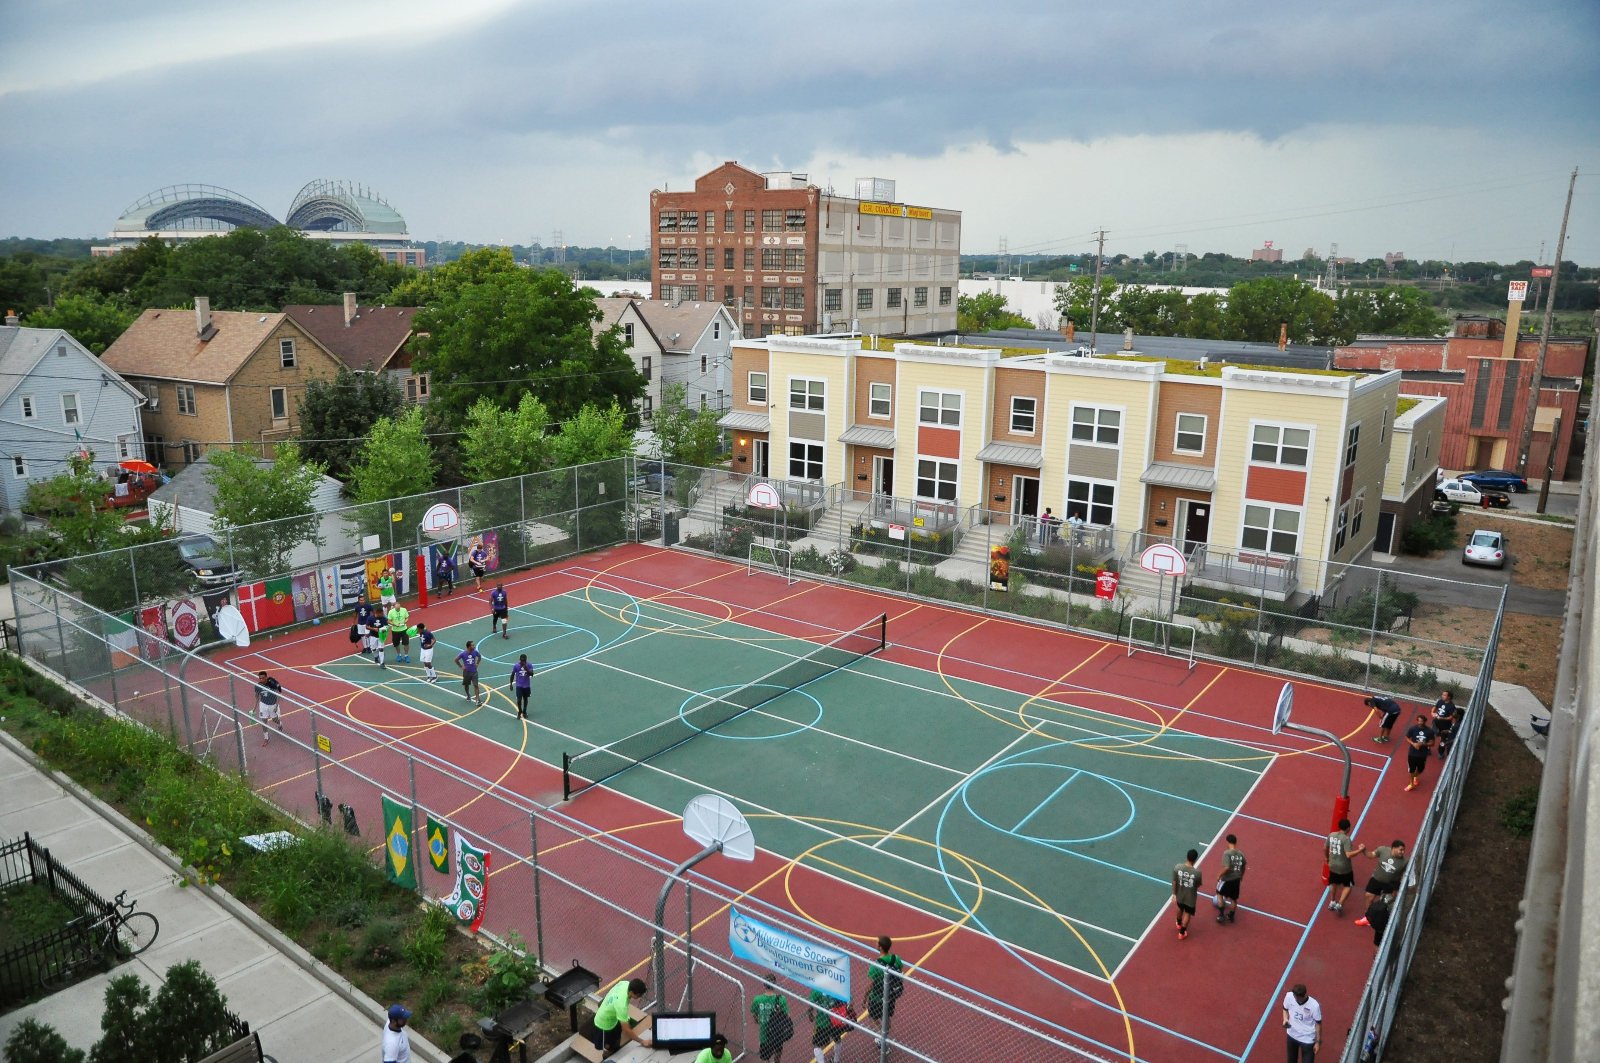 SOCCERFEST at the Silver City Townhomes Sports Courts. Organized by the Milwaukee Soccer Development Group.